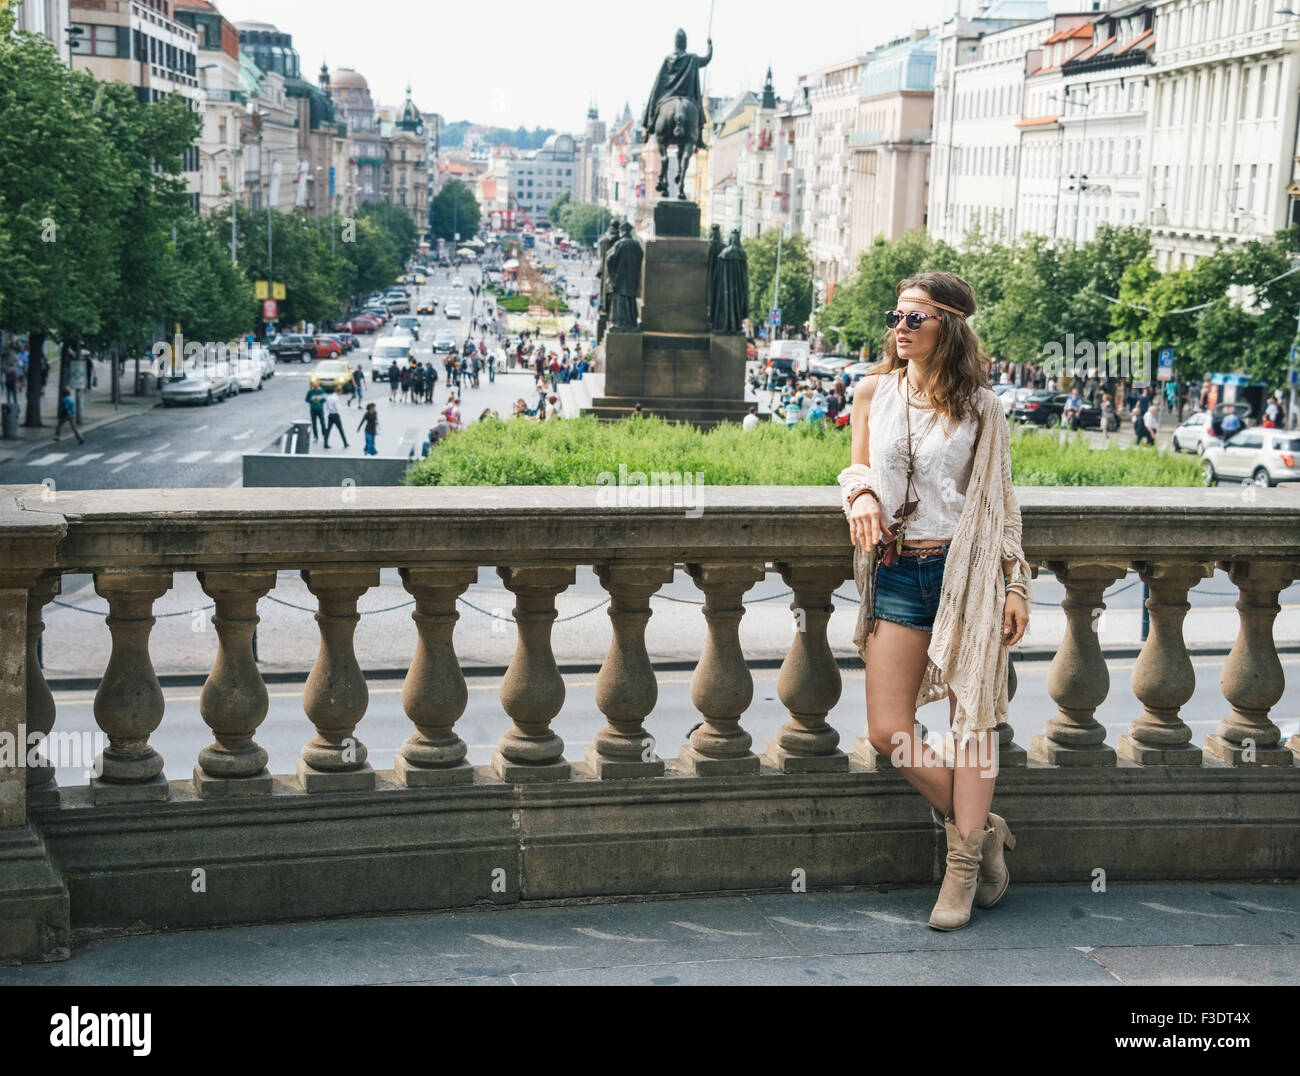 Trendy hippie woman tourist in jeans shorts, knitted shawl and white blouse standing on Wenceslas Square in Prague. - Stock Image